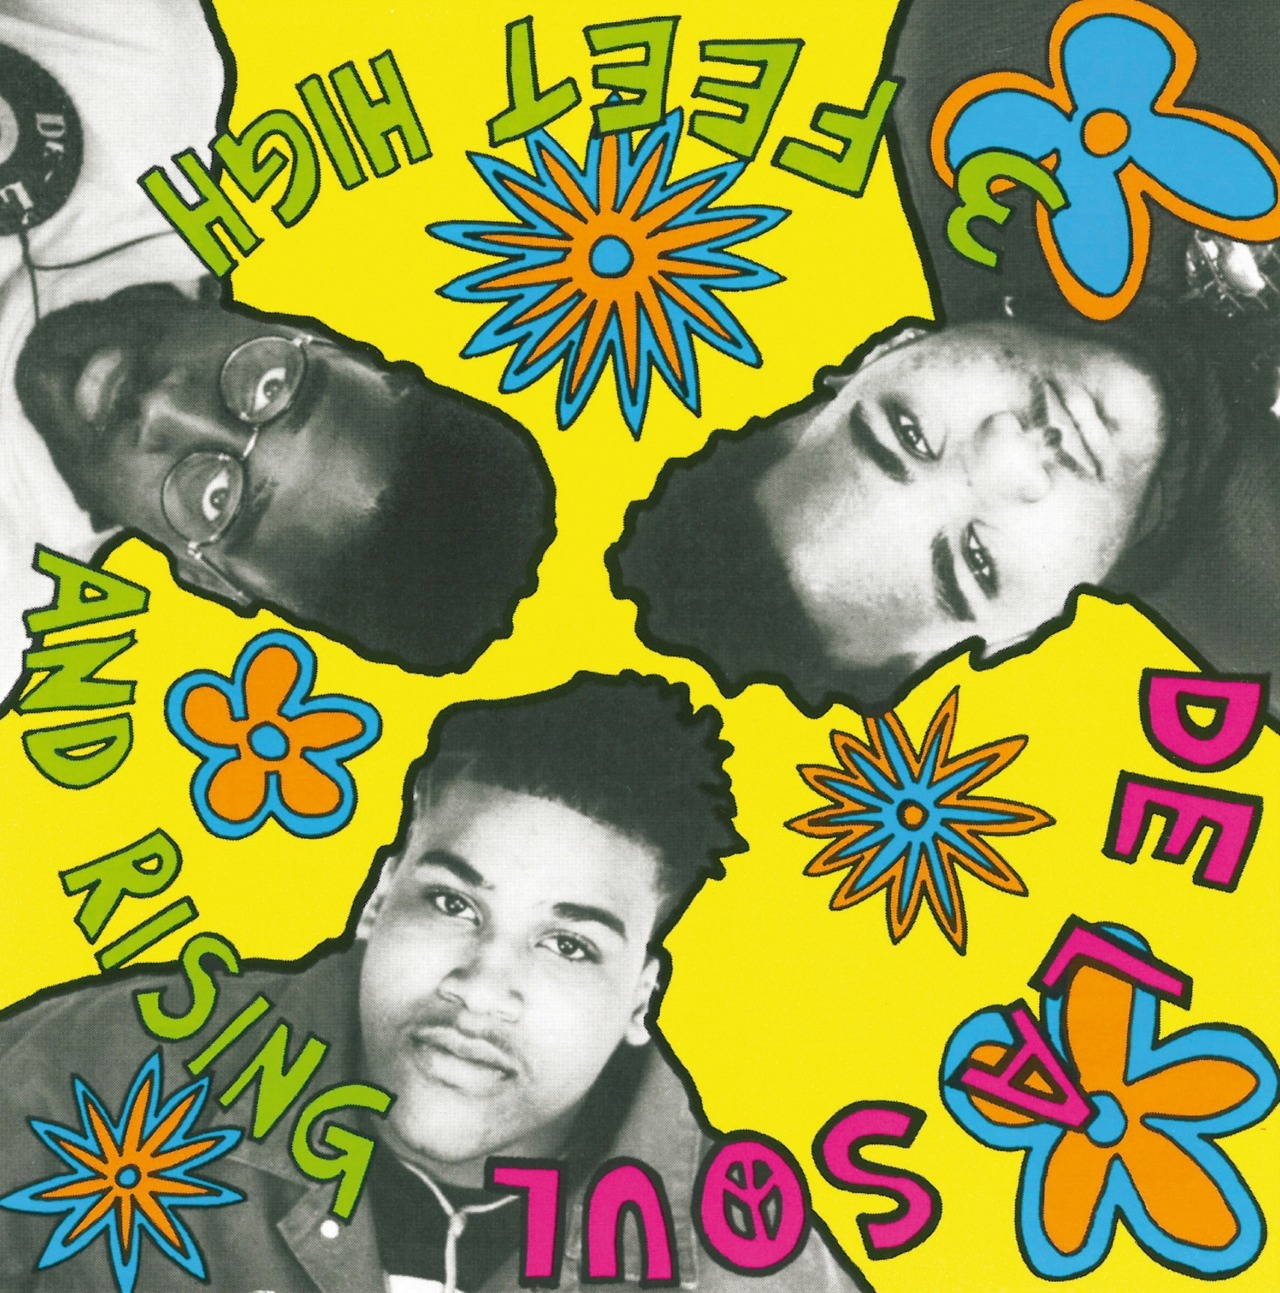 BACK IN THE DAY | 3/3/89 | De La Soul releases their debut album, 3 Feet High and Rising, through Tommy Boy Records